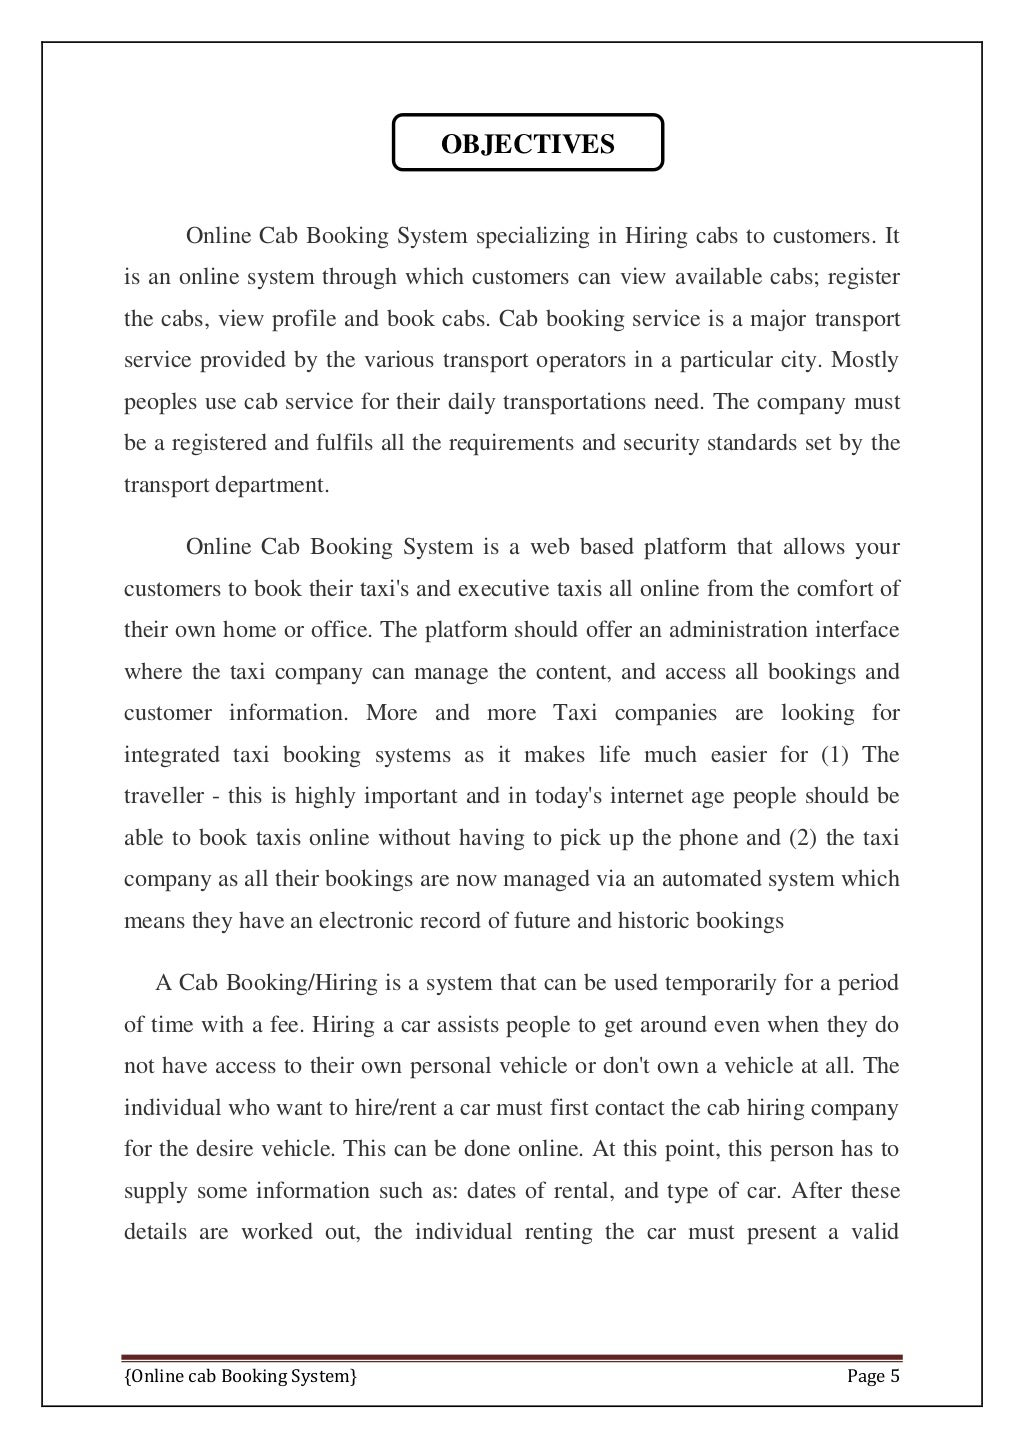 Online Cab Booking System Final Report page 12